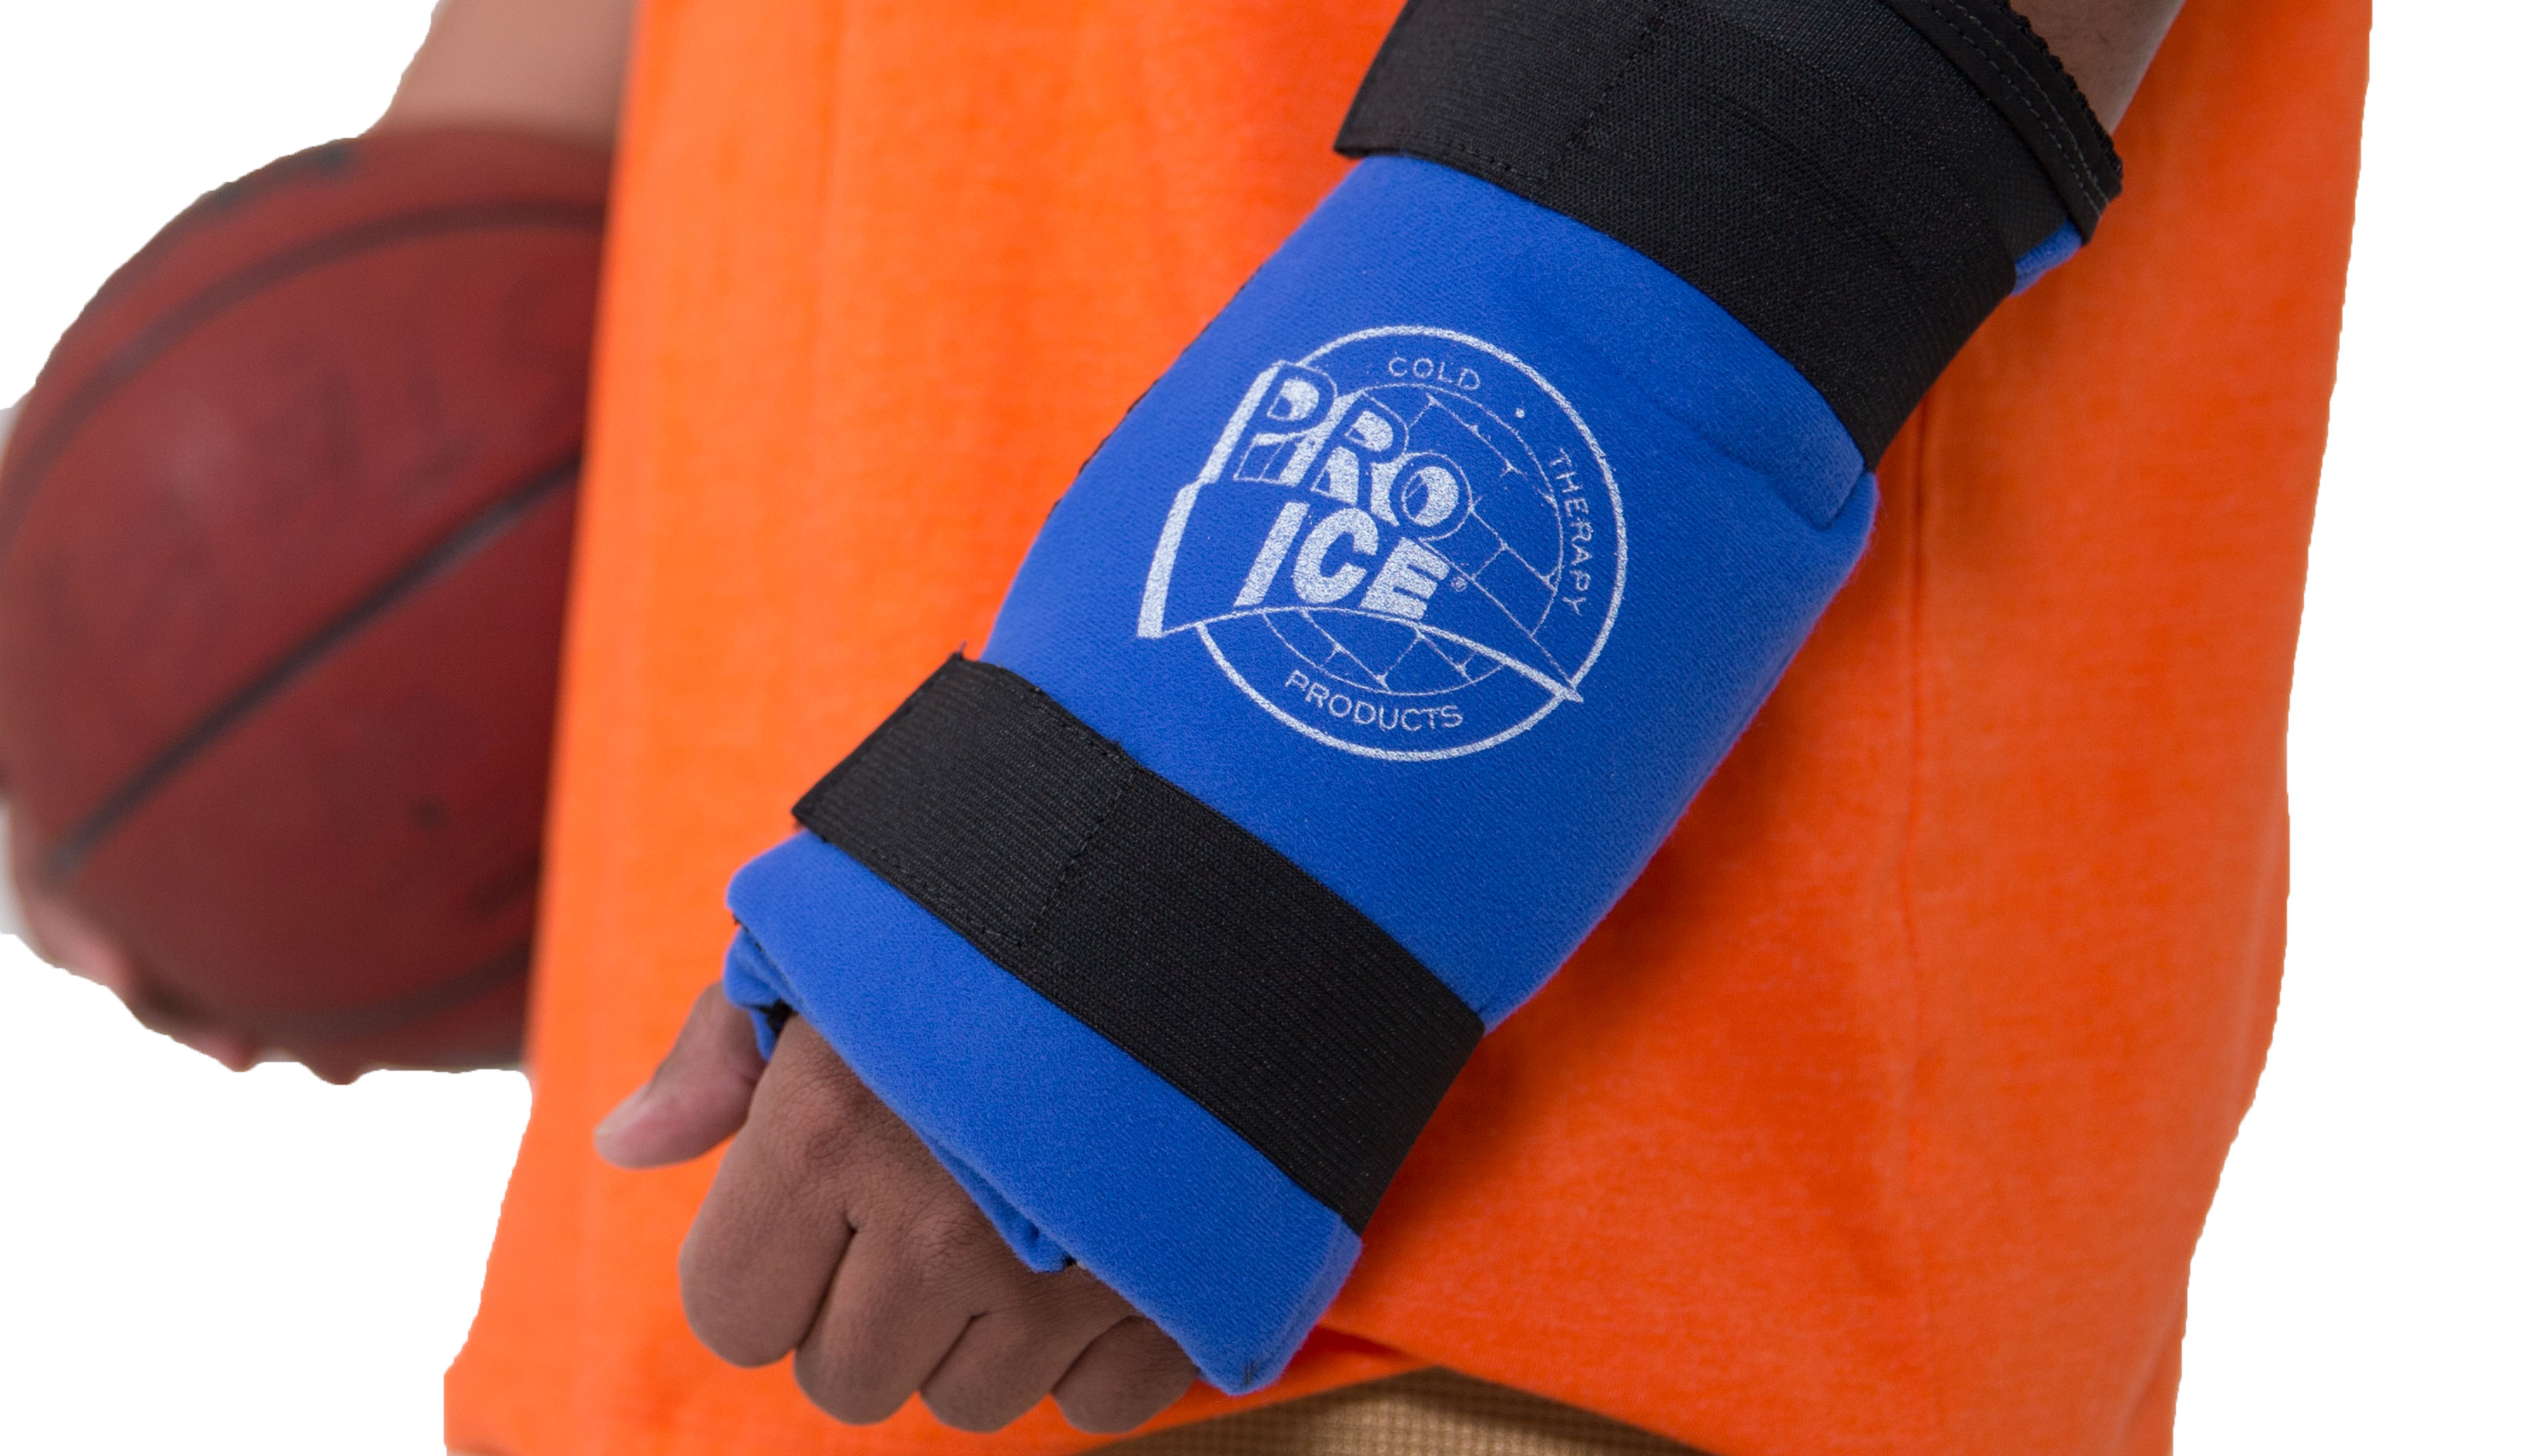 Universal Wrist Ice Pack For Wrist Sprains, Injury and Surgery. By Pro Ice pi300